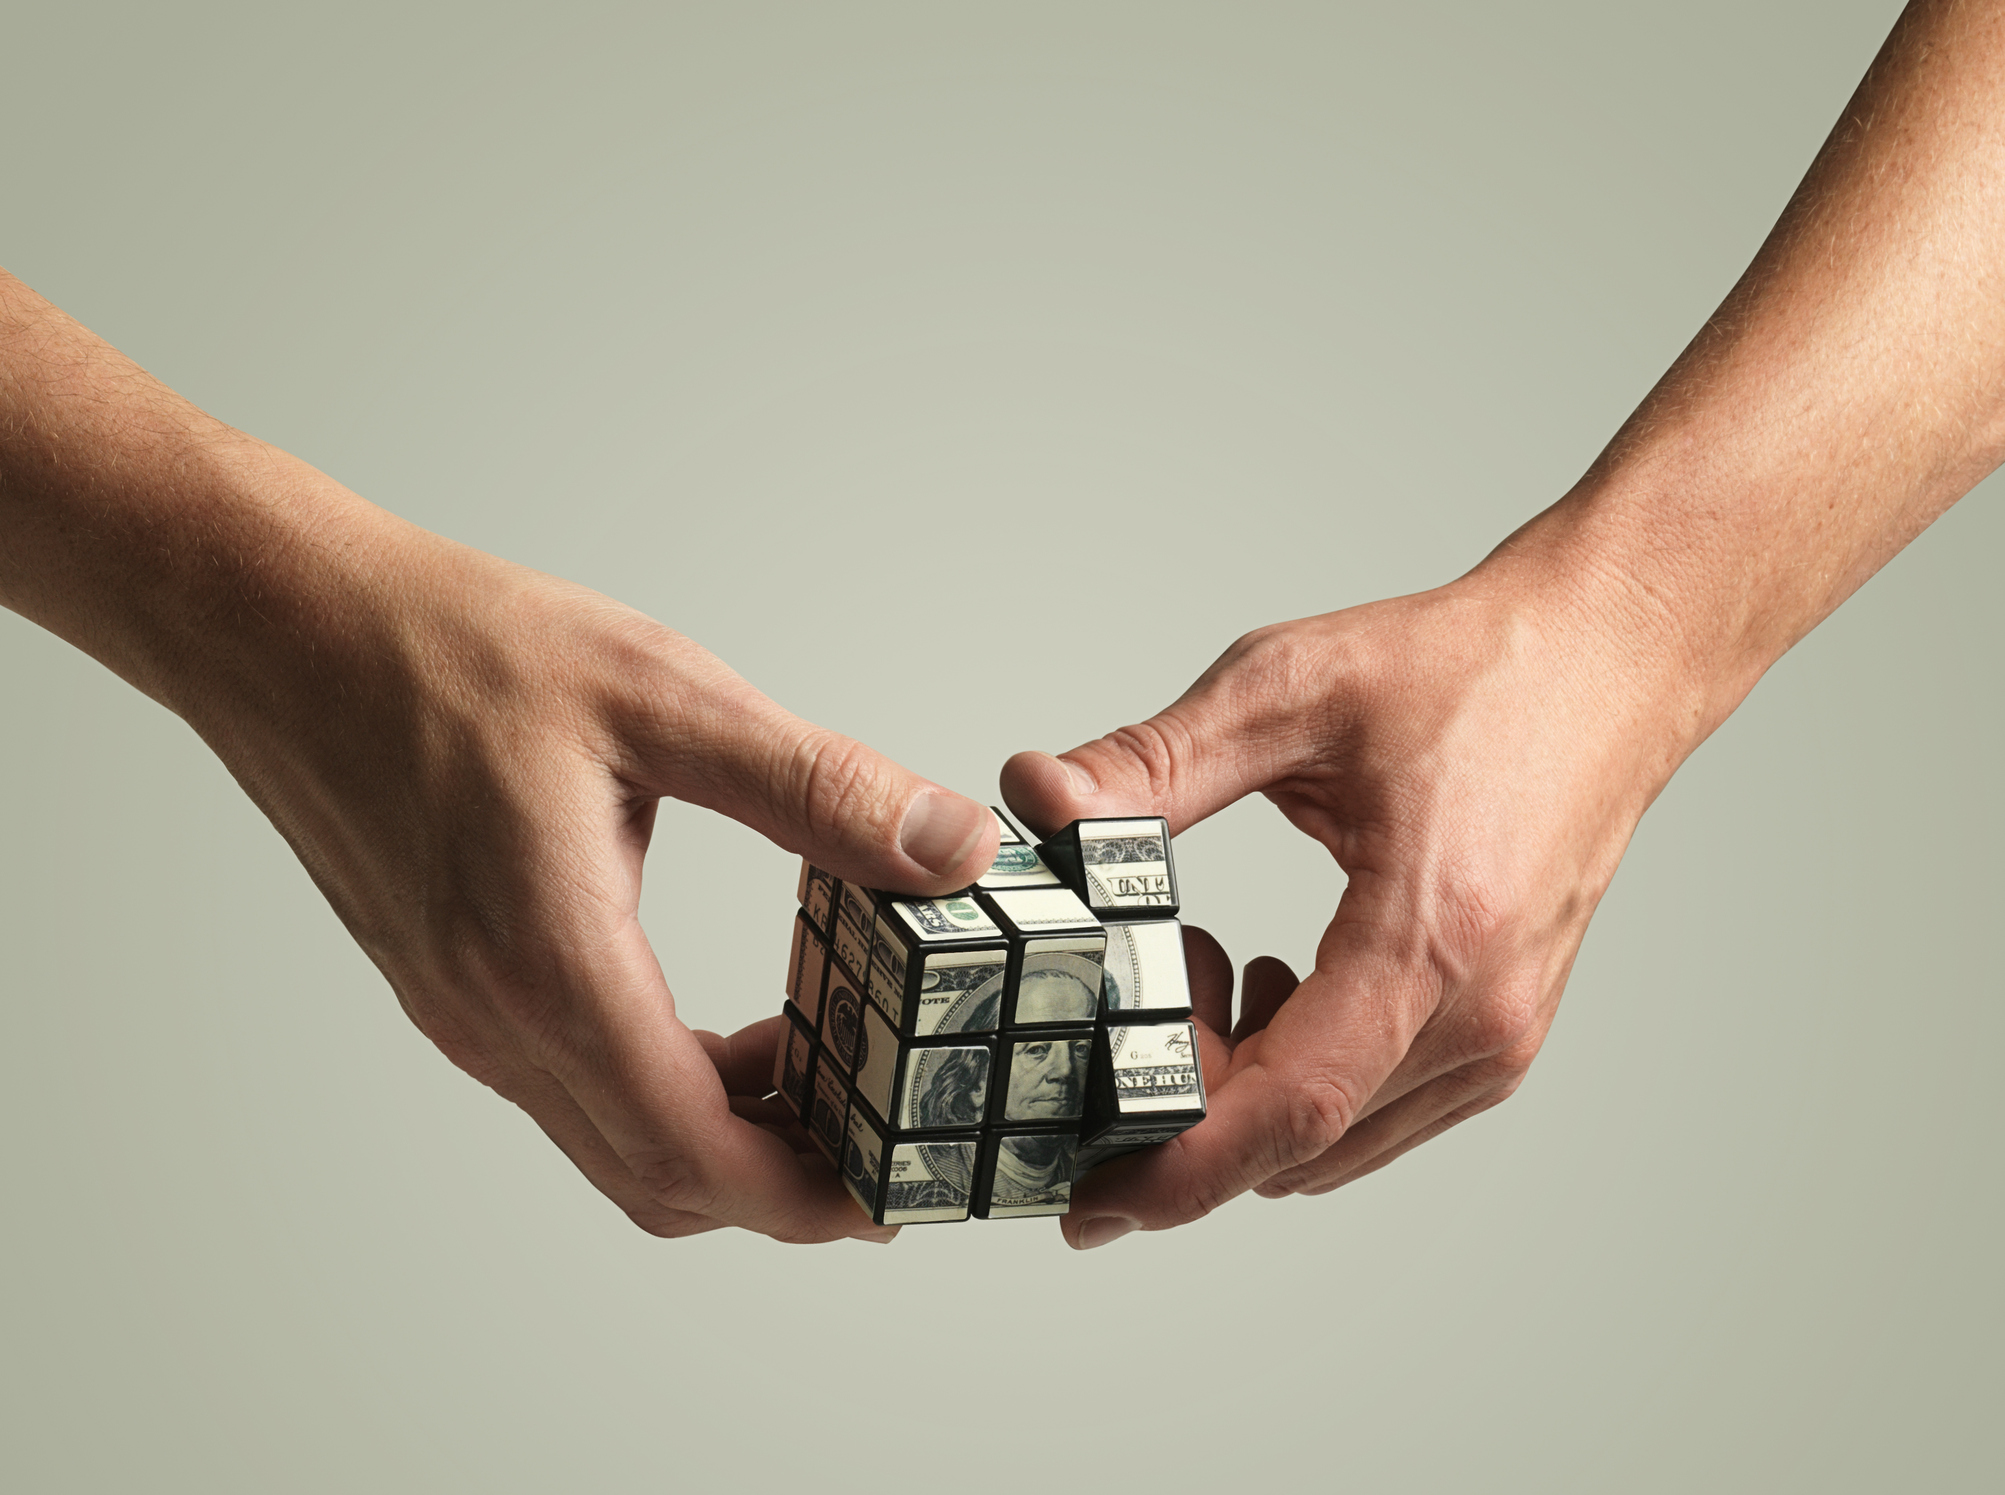 Hands holding rubik's cube made of 100 dollar bill